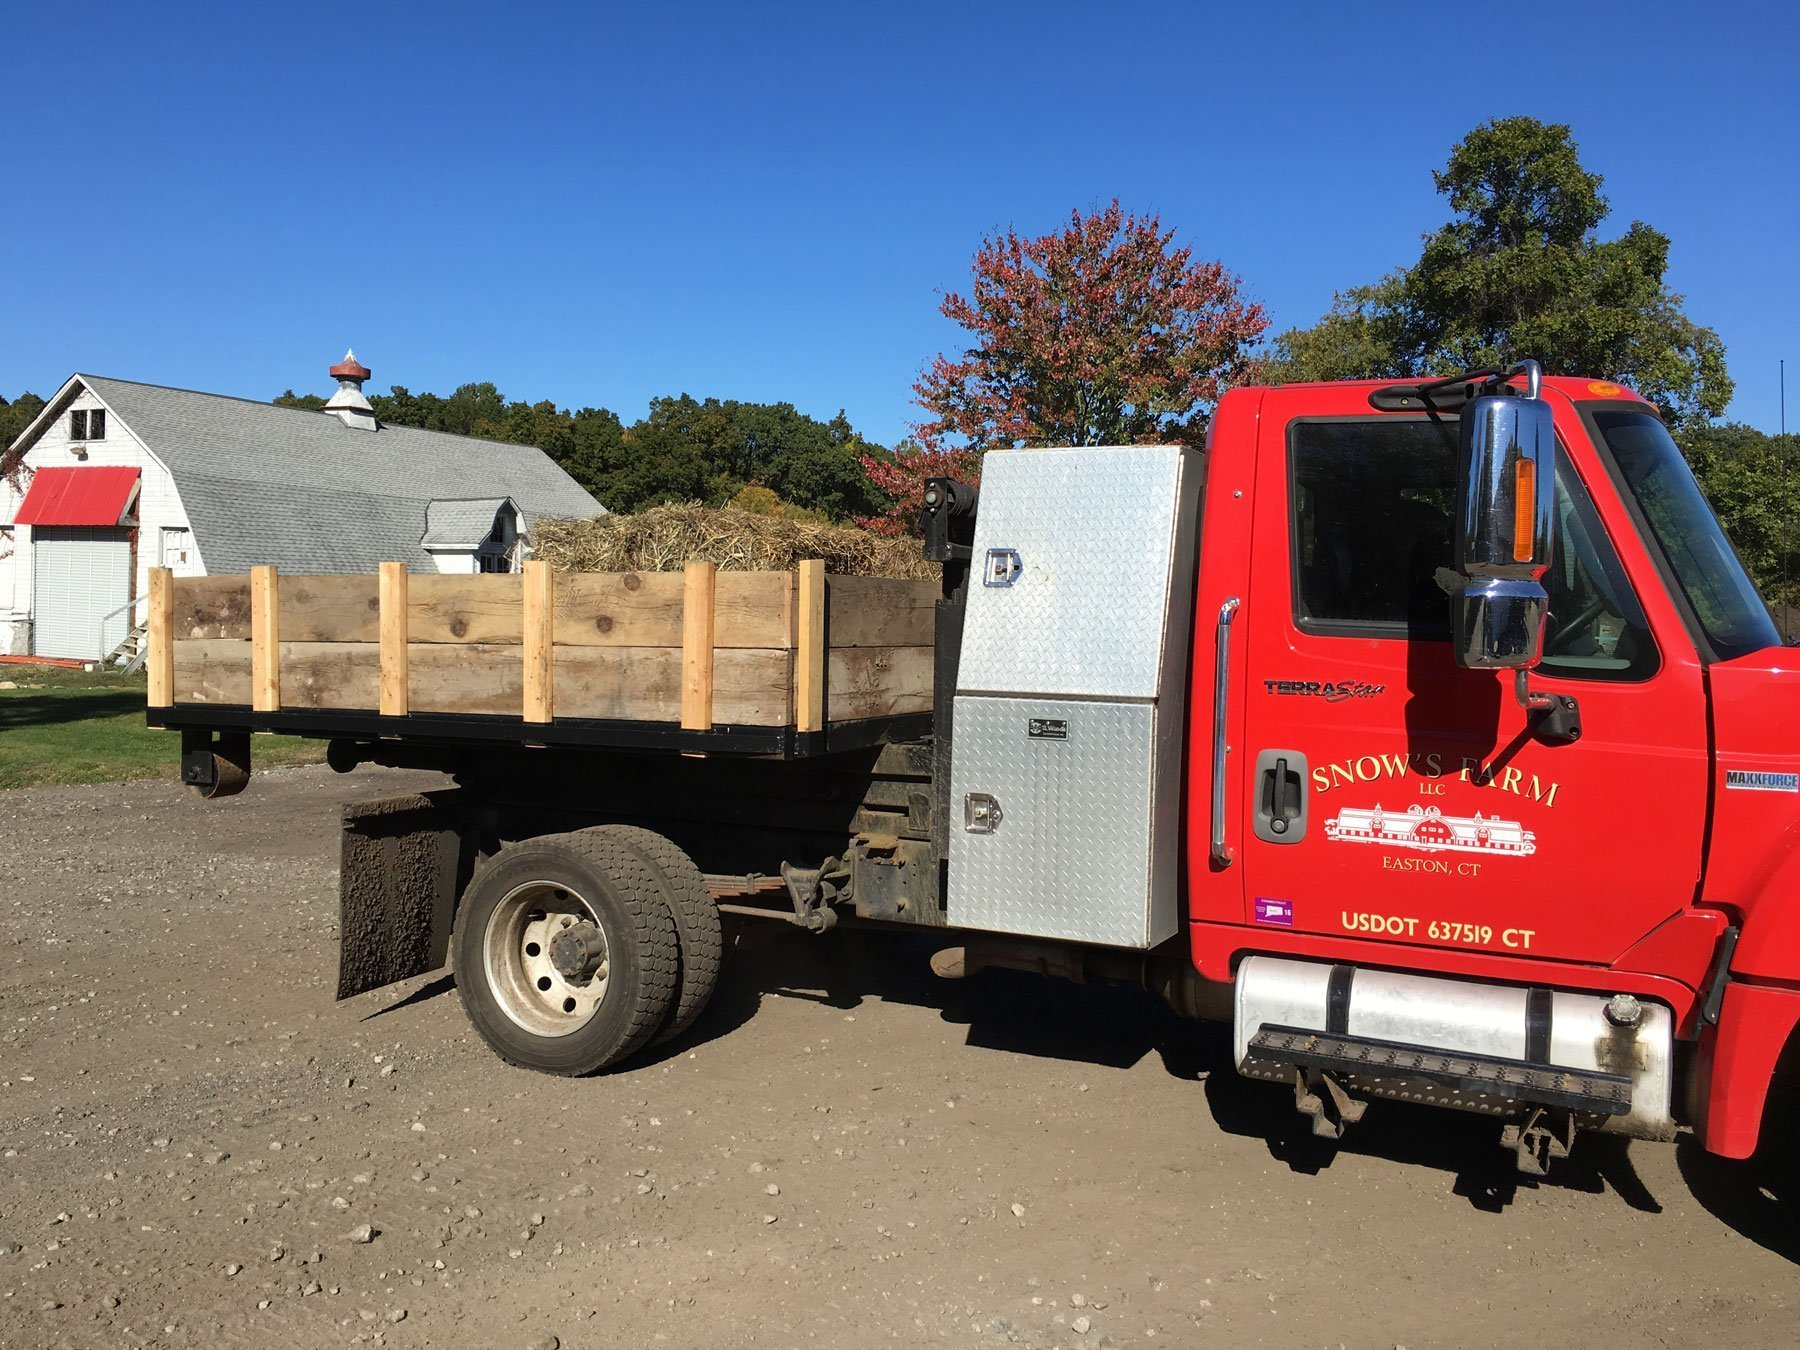 Delivery Truck #1 - This truck can hold a maximum of 5 cu yd